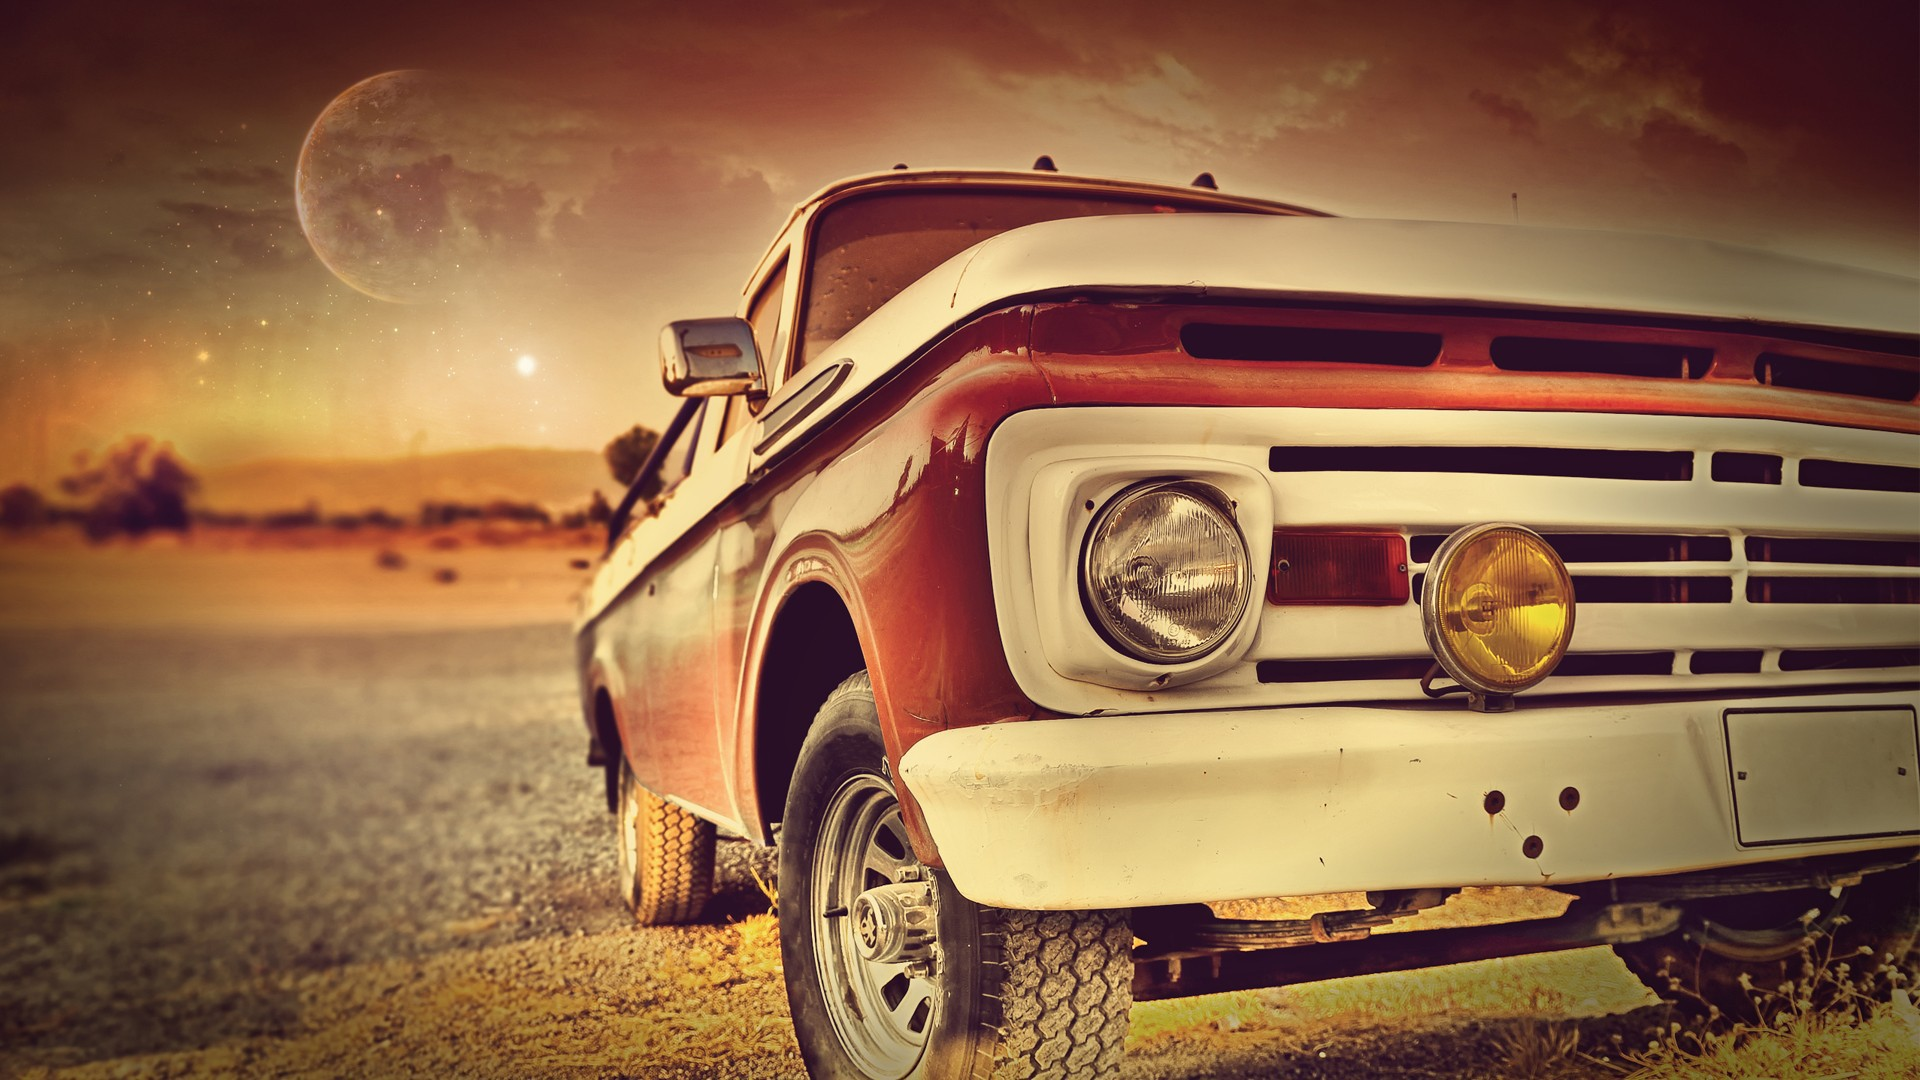 Vintage Cars Wallpapers HD